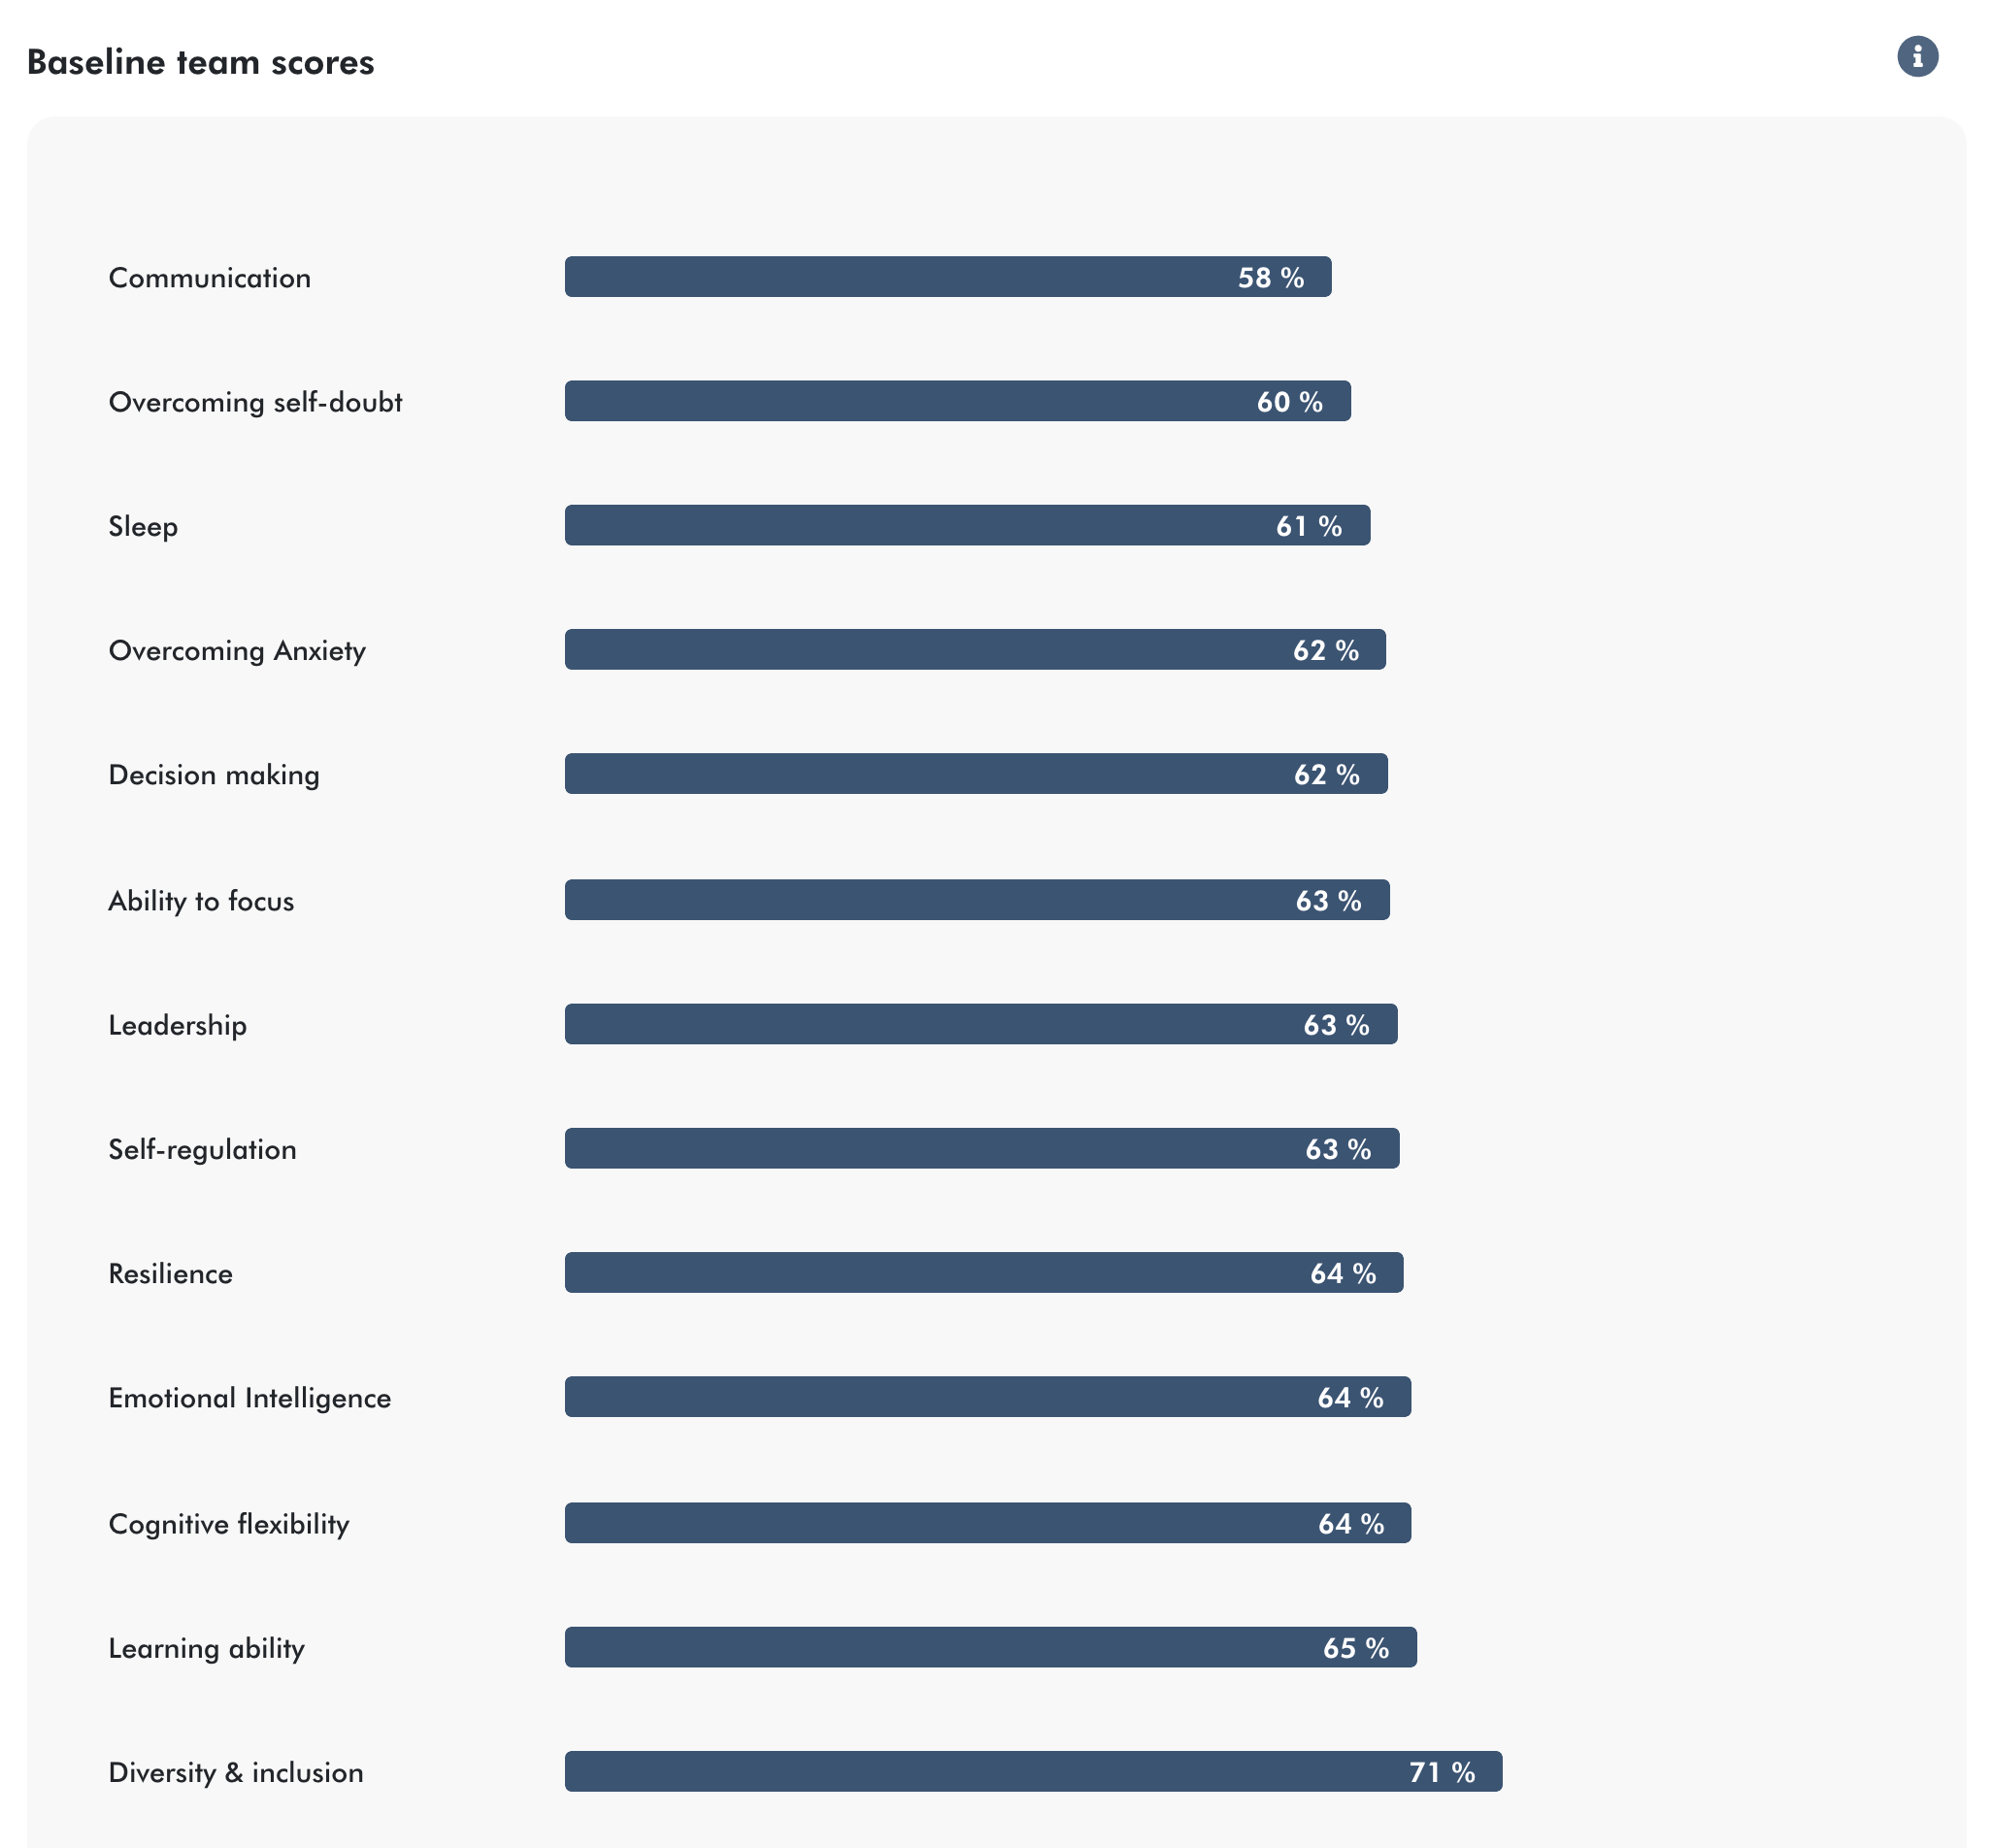 Baseline scores to indicate cognitive strengths & weaknesses of your team